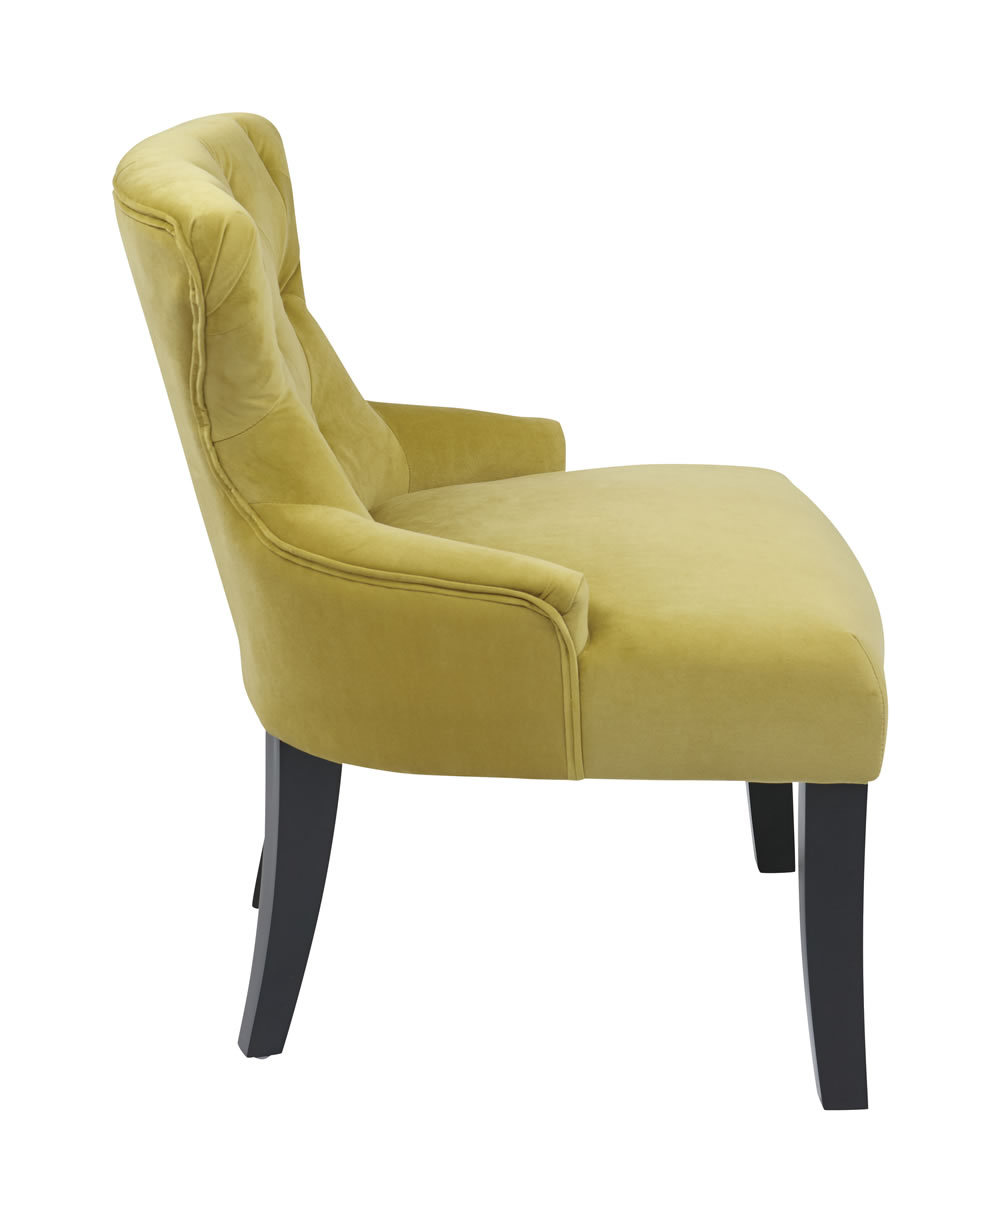 Ave six living room basil velvet fabric hourglass bedroom for Bedroom accent chairs